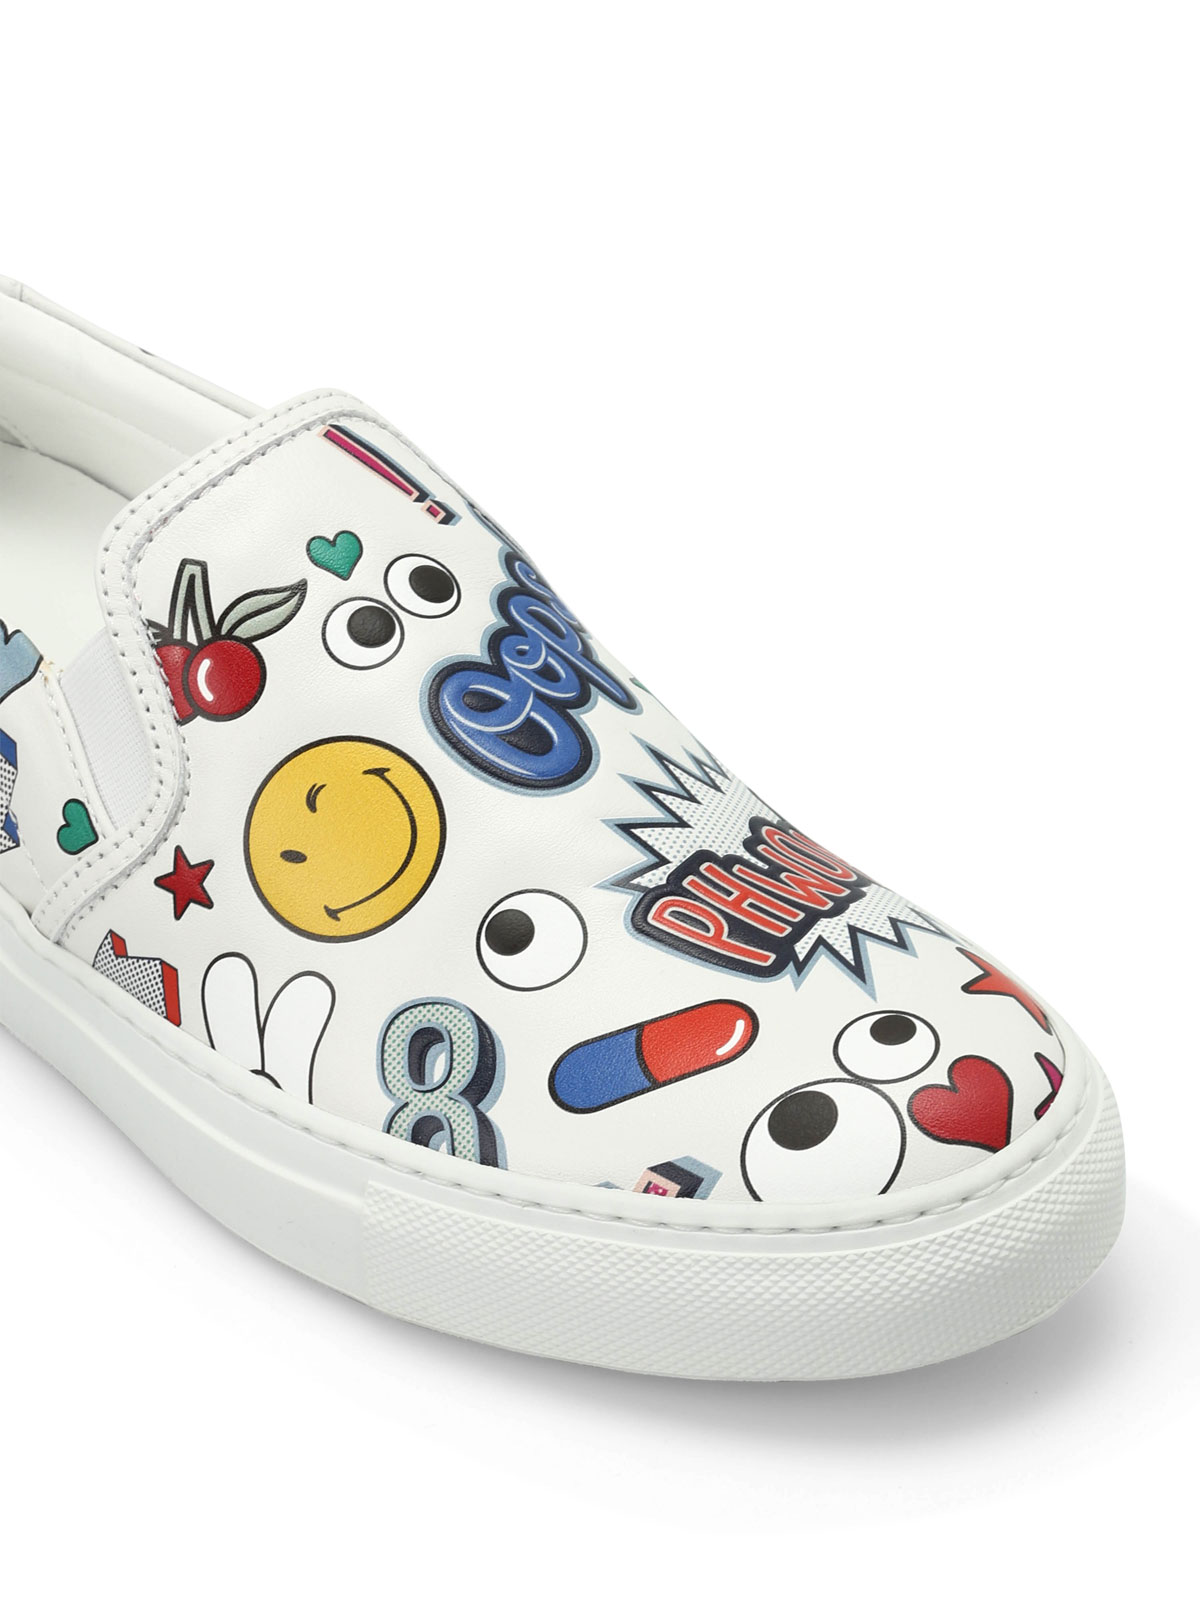 Chaussures - Mocassins Anya Hindmarch